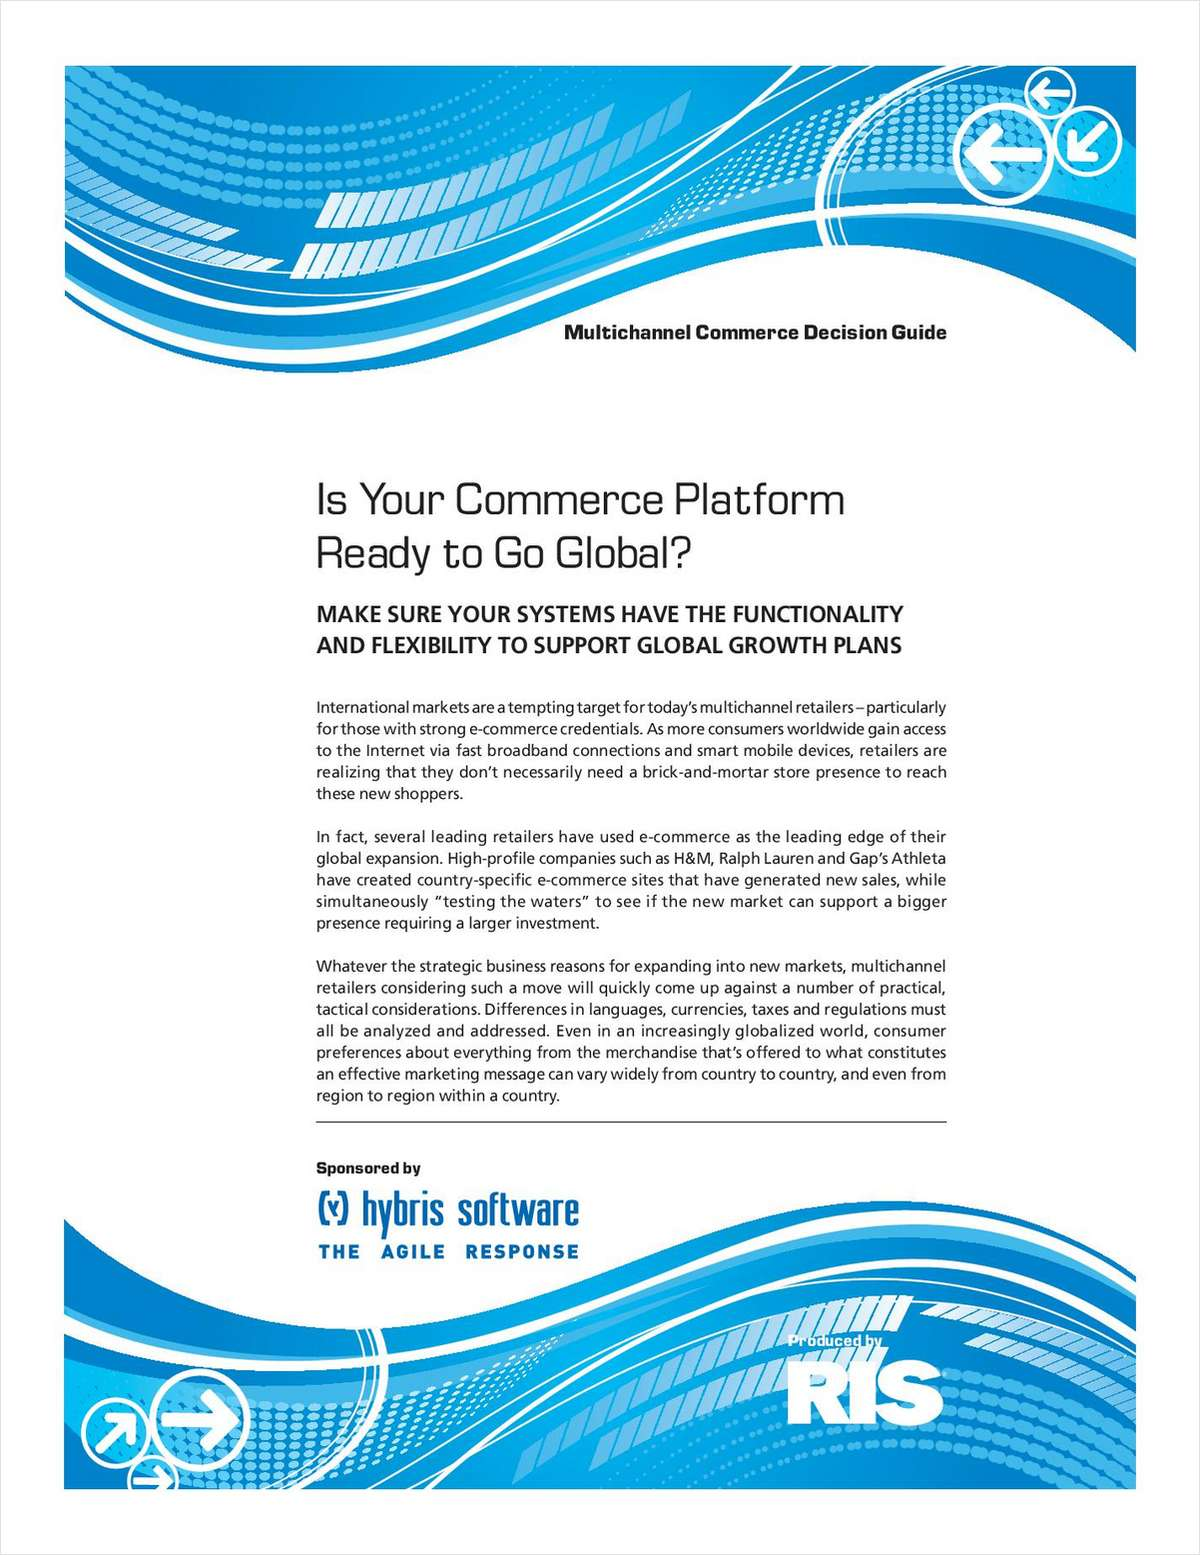 Is Your B2C Commerce Platform Ready to Go Global?